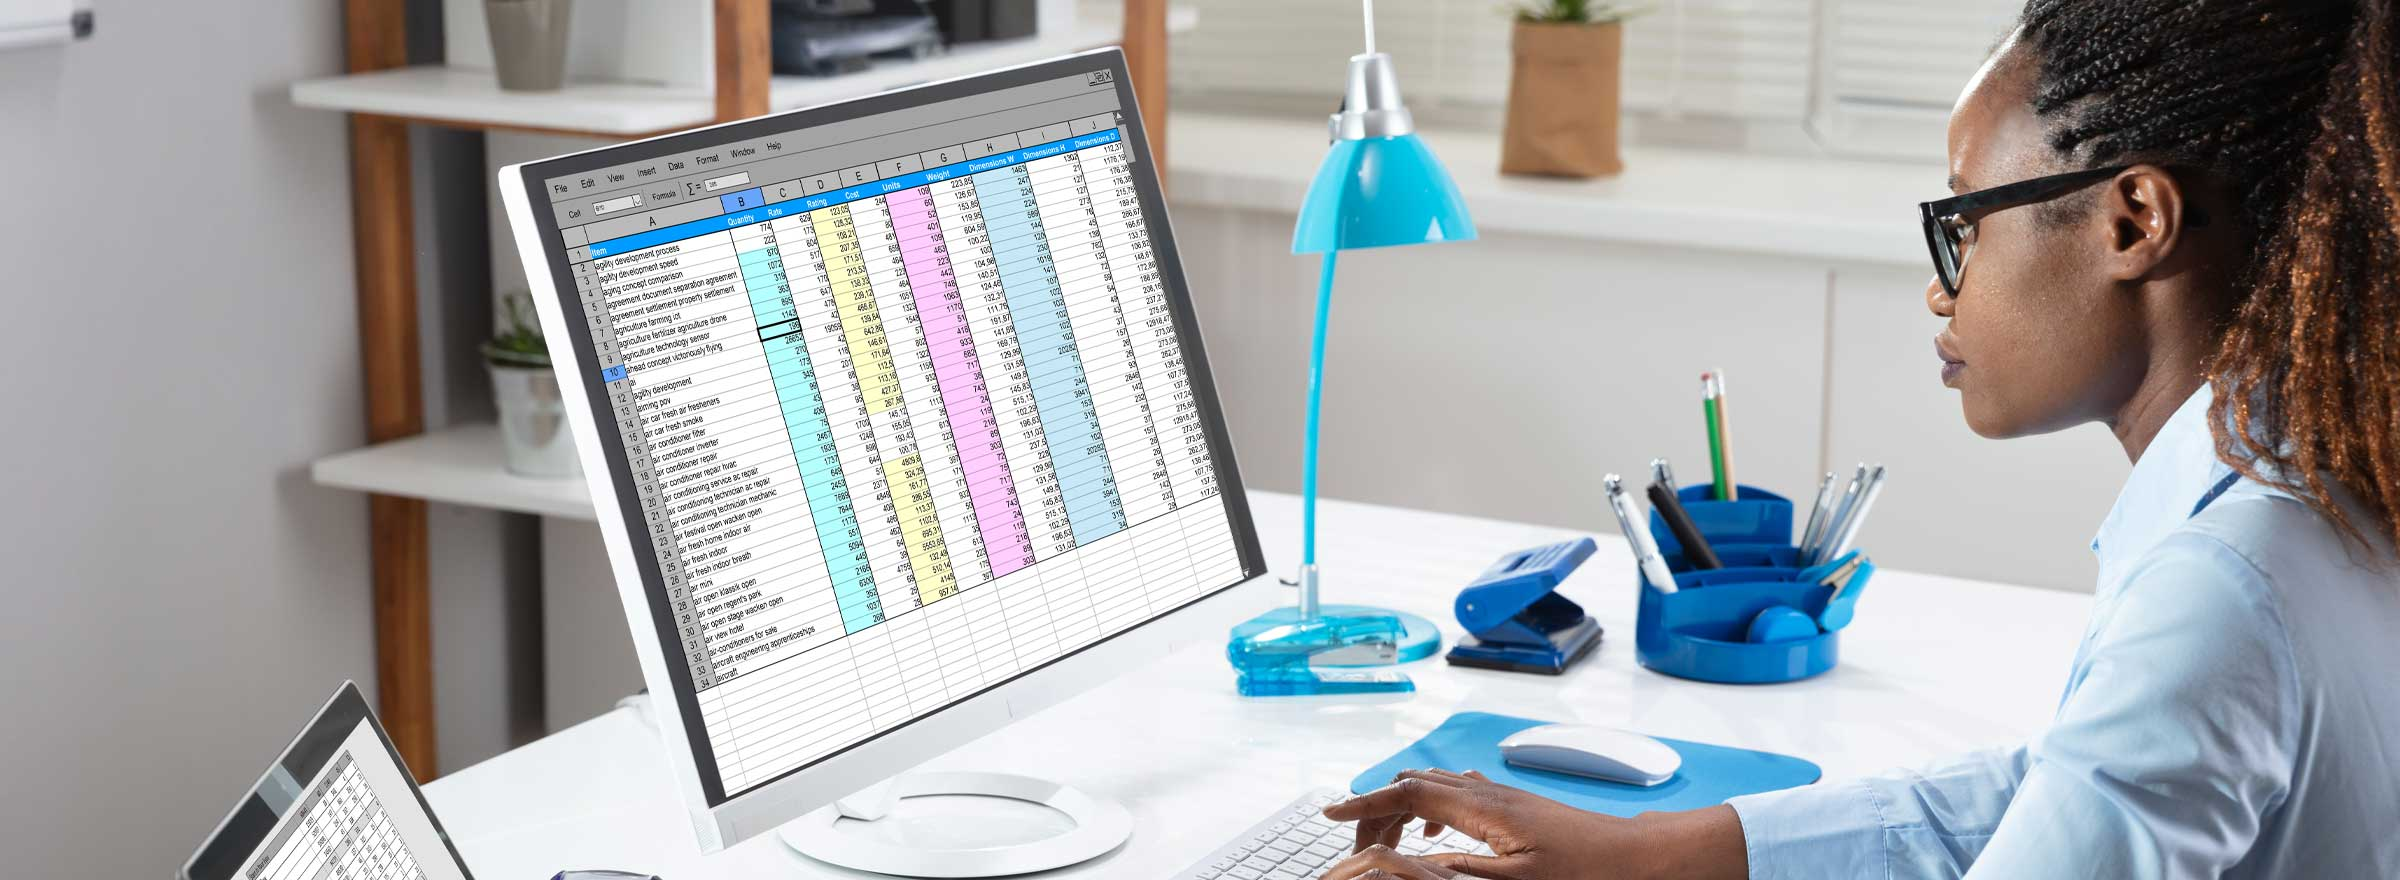 Woman working on a large spreadsheet